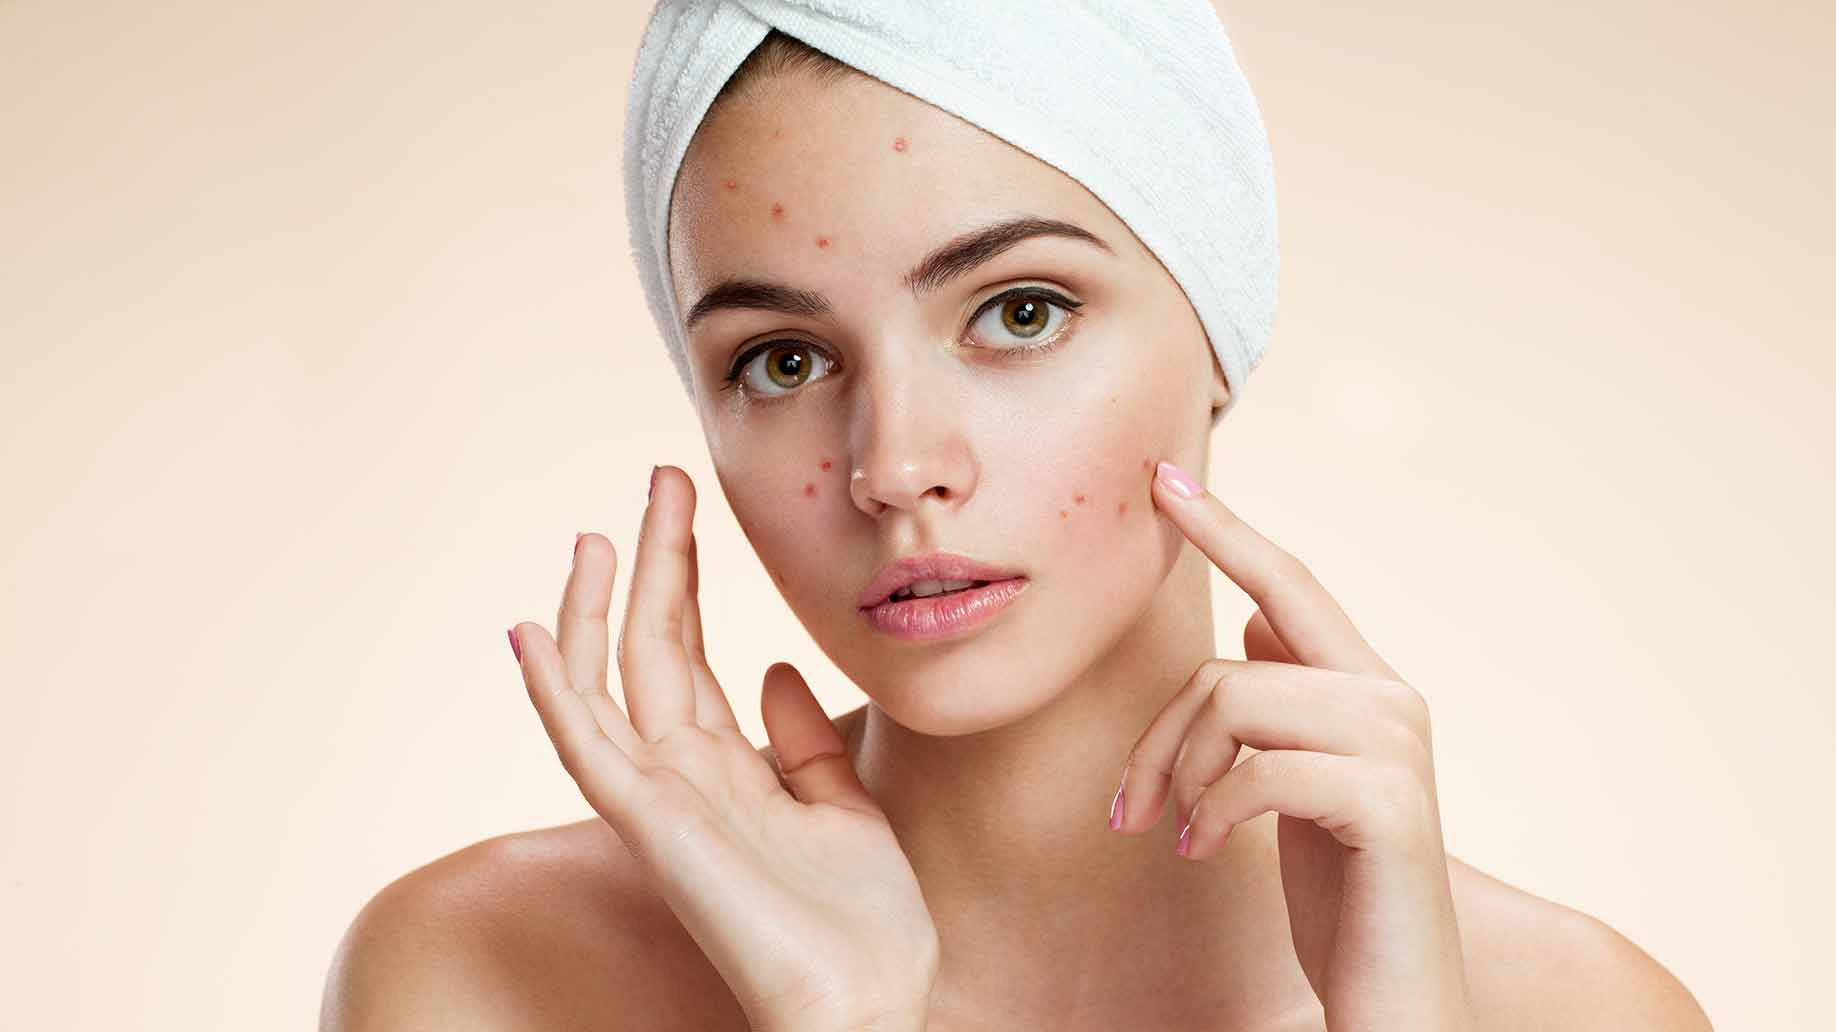 acne-natural-facial-masks-diy-problem-skin.jpg